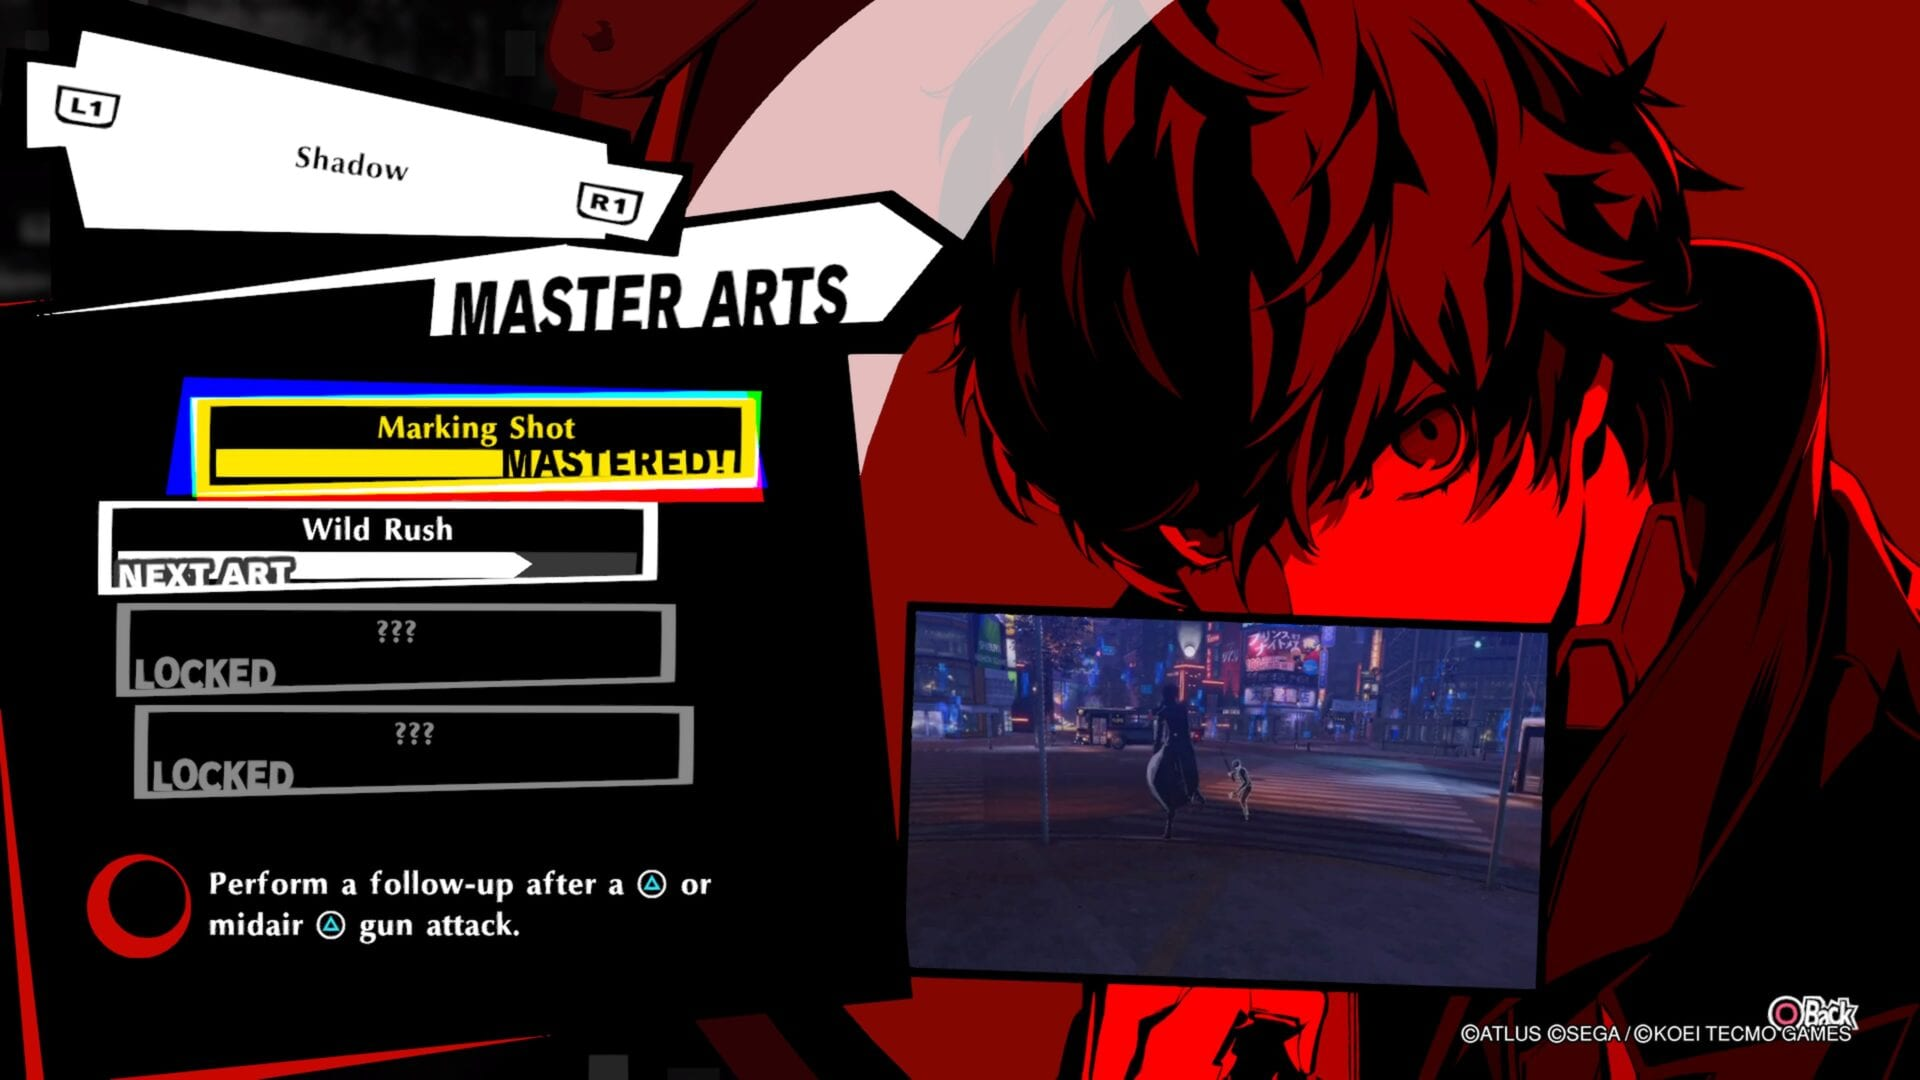 Persona 5 Strikers, How to Unlock Master Arts